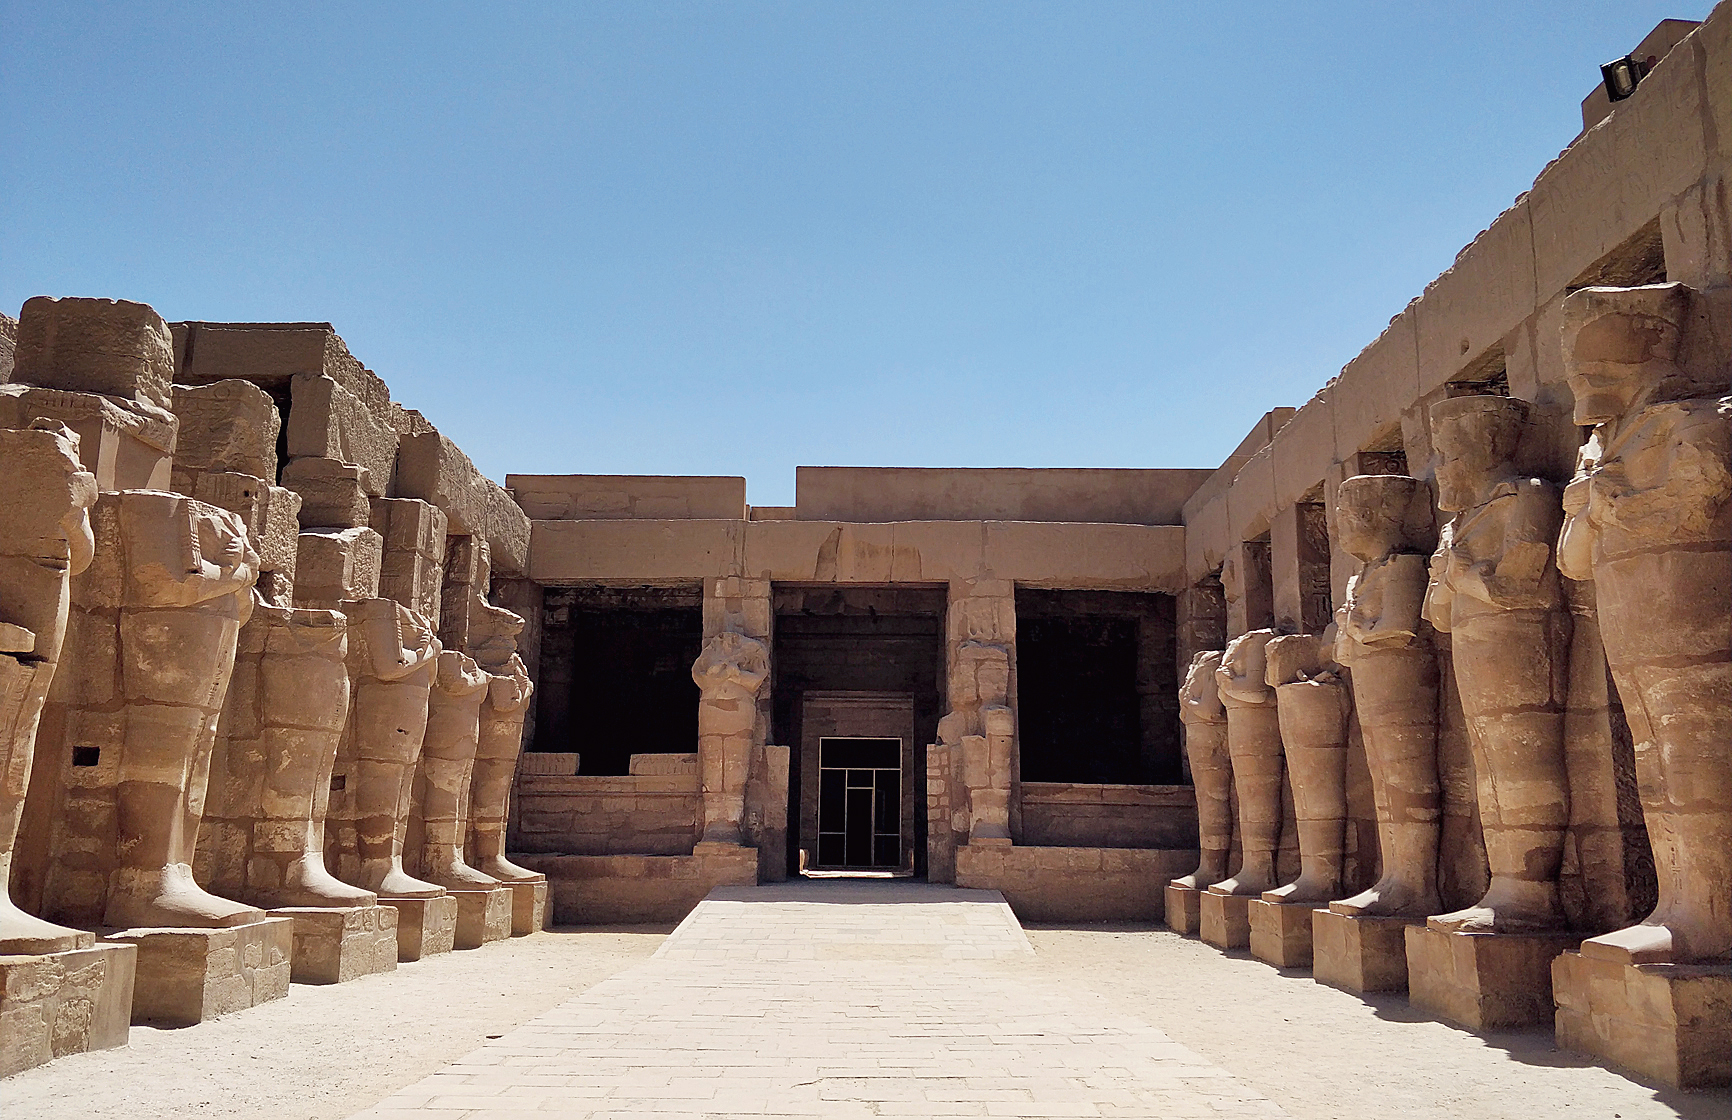 The columns and courtyard of the temple of Karnak in Luxor, which is one of the most popular tourist destinations in Egypt .